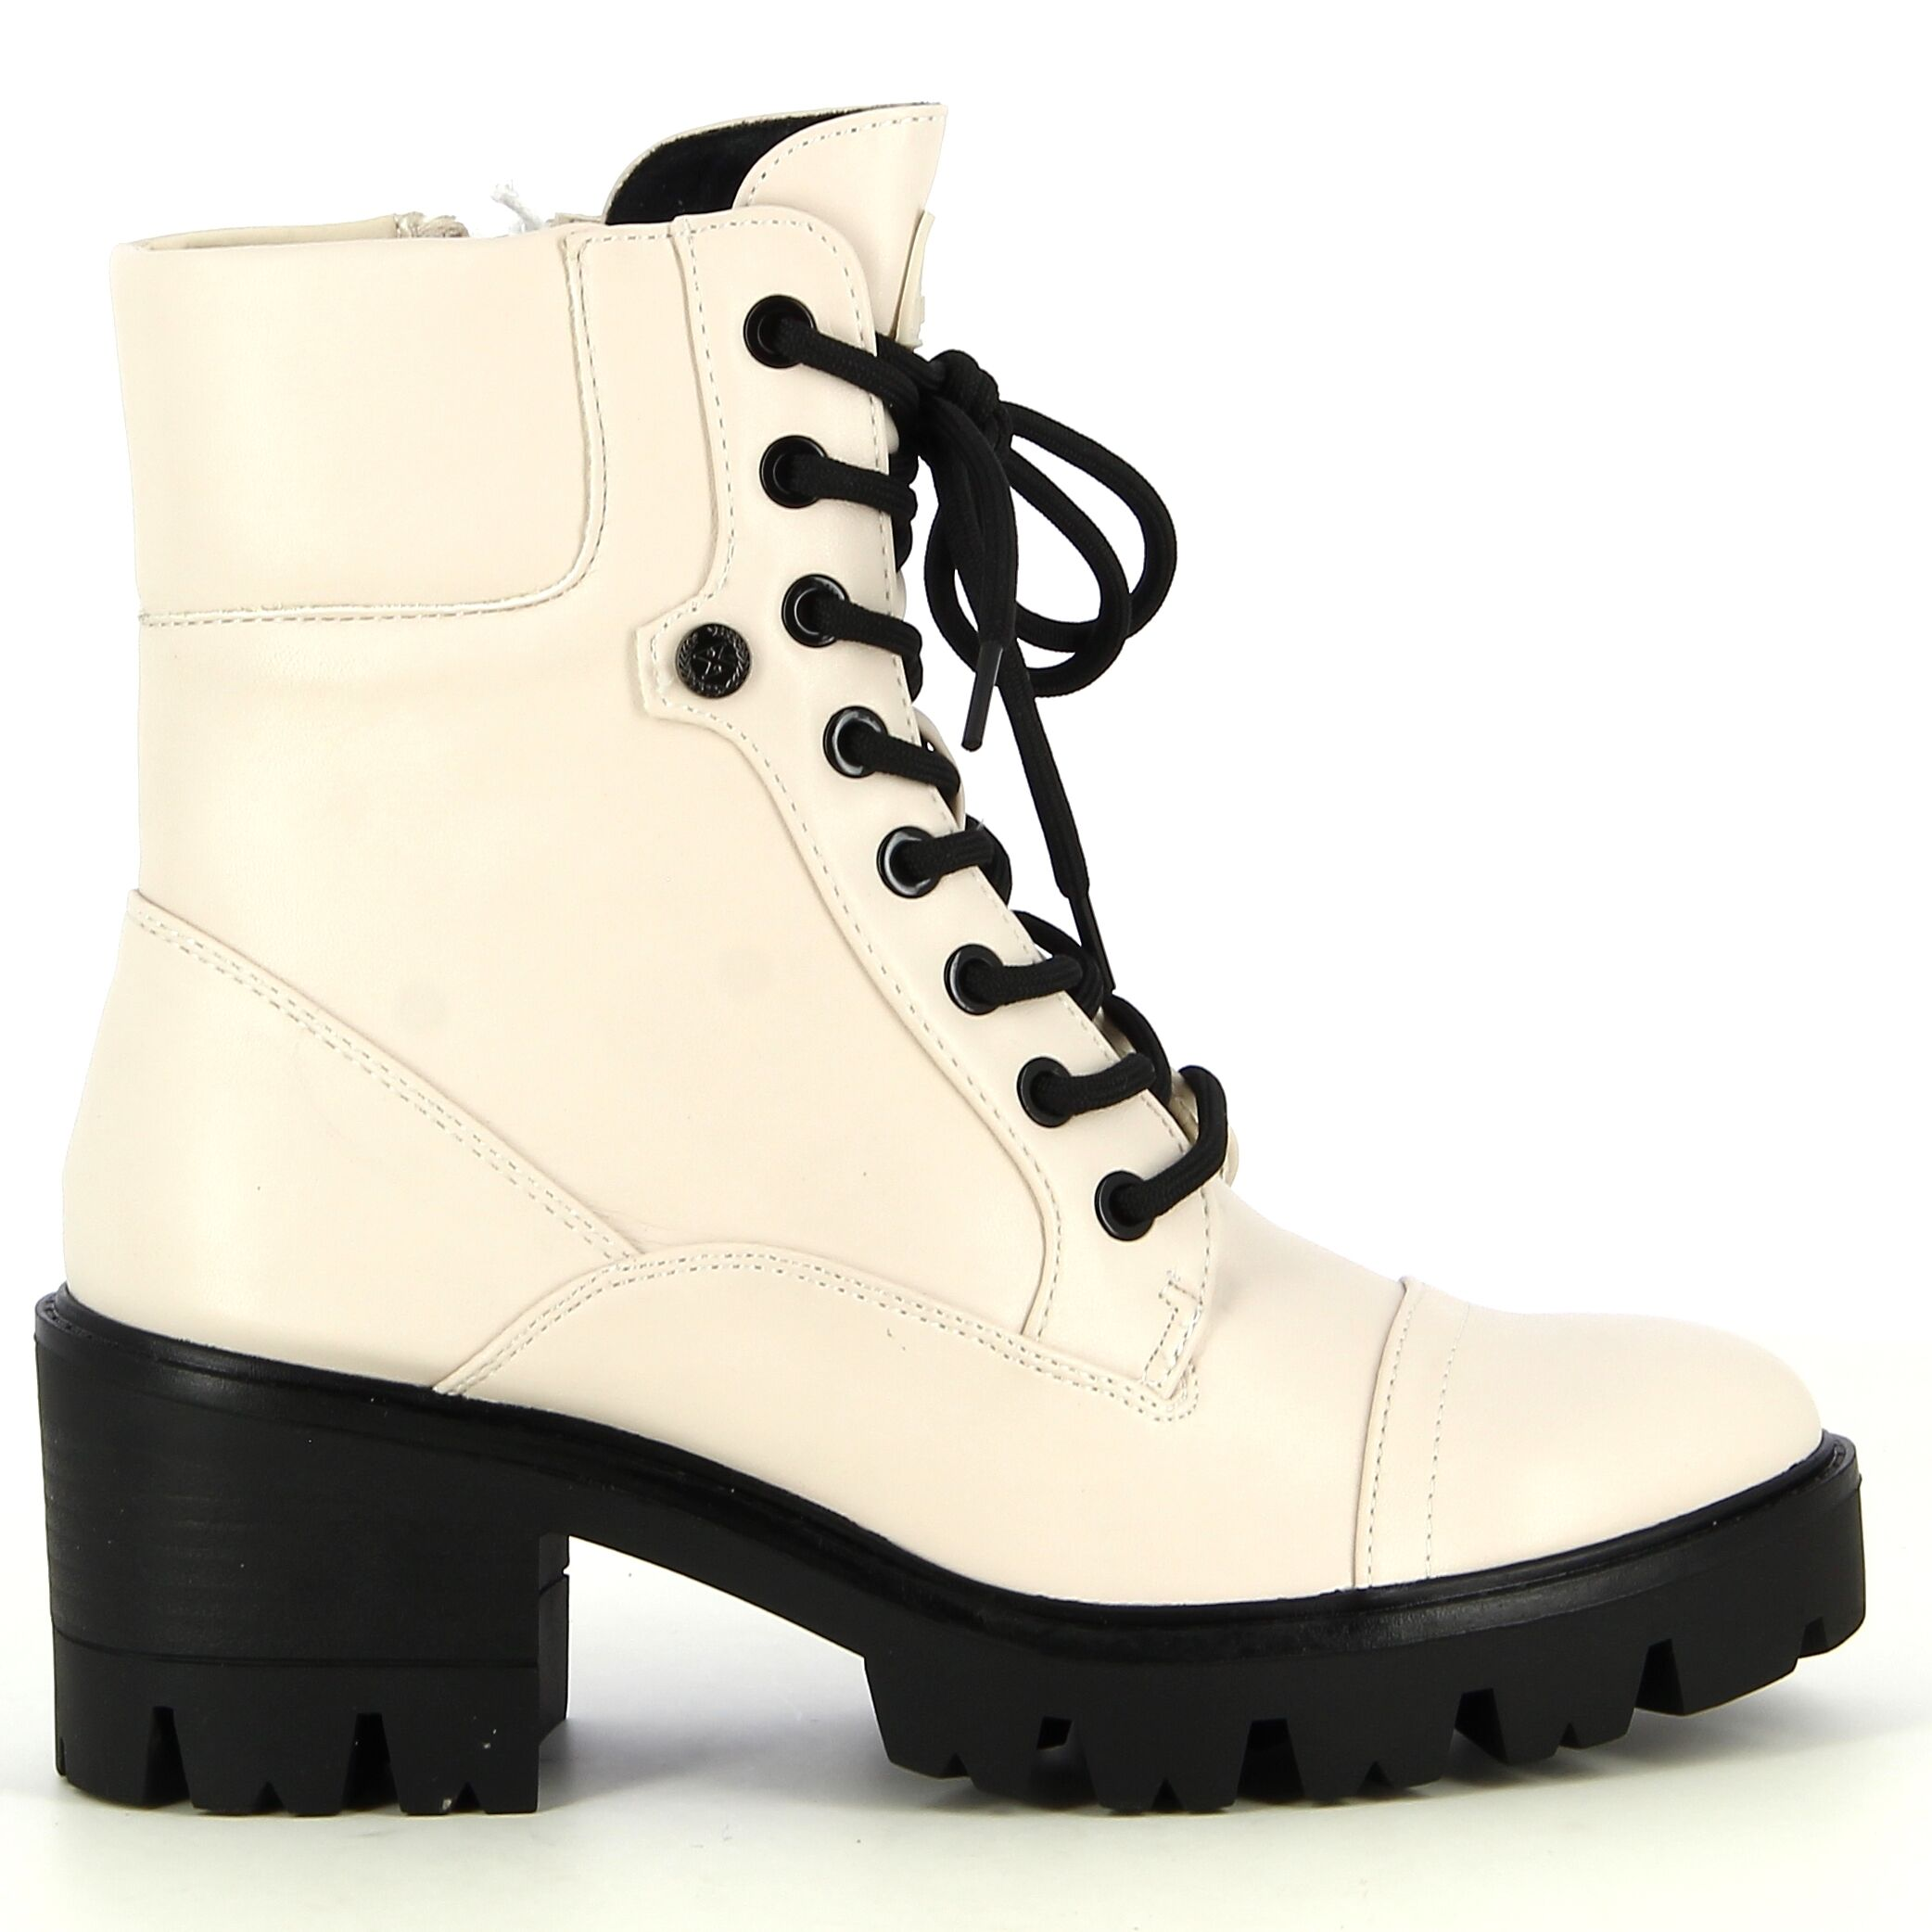 XTI - Off-White - Boots